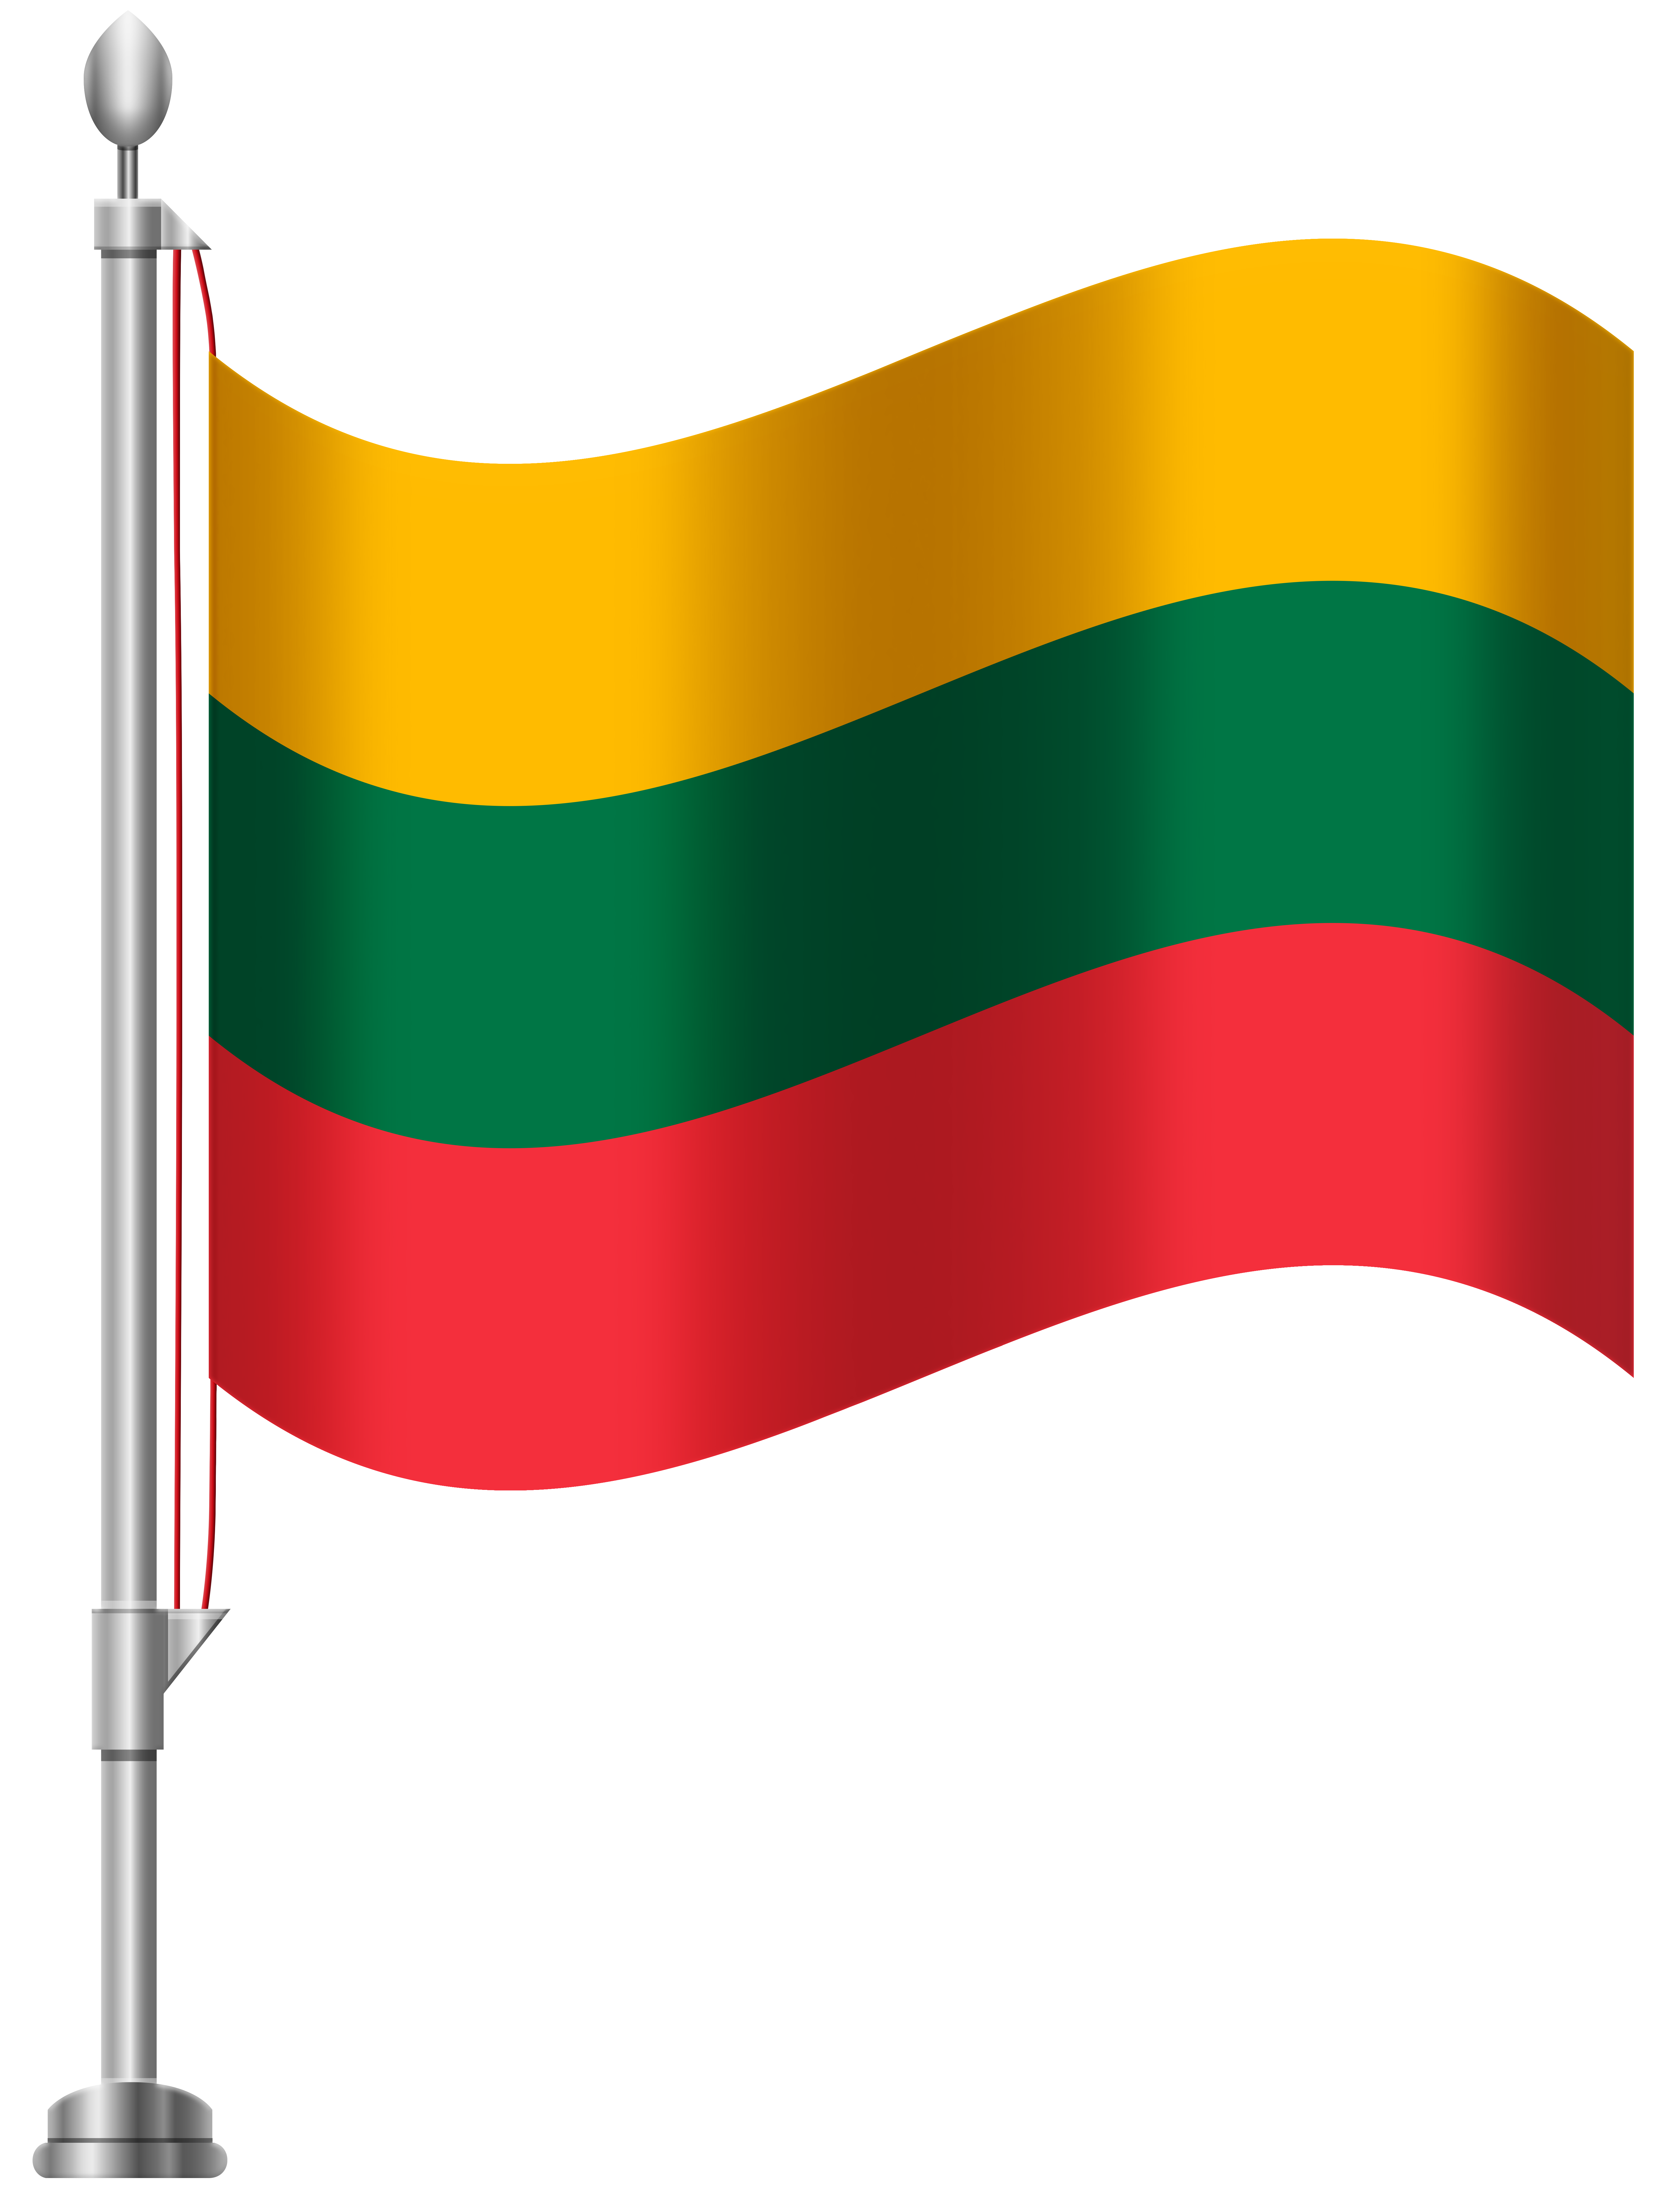 Lithuanian flag clipart clip royalty free Lithuania Flag PNG Clip Art - Best WEB Clipart clip royalty free